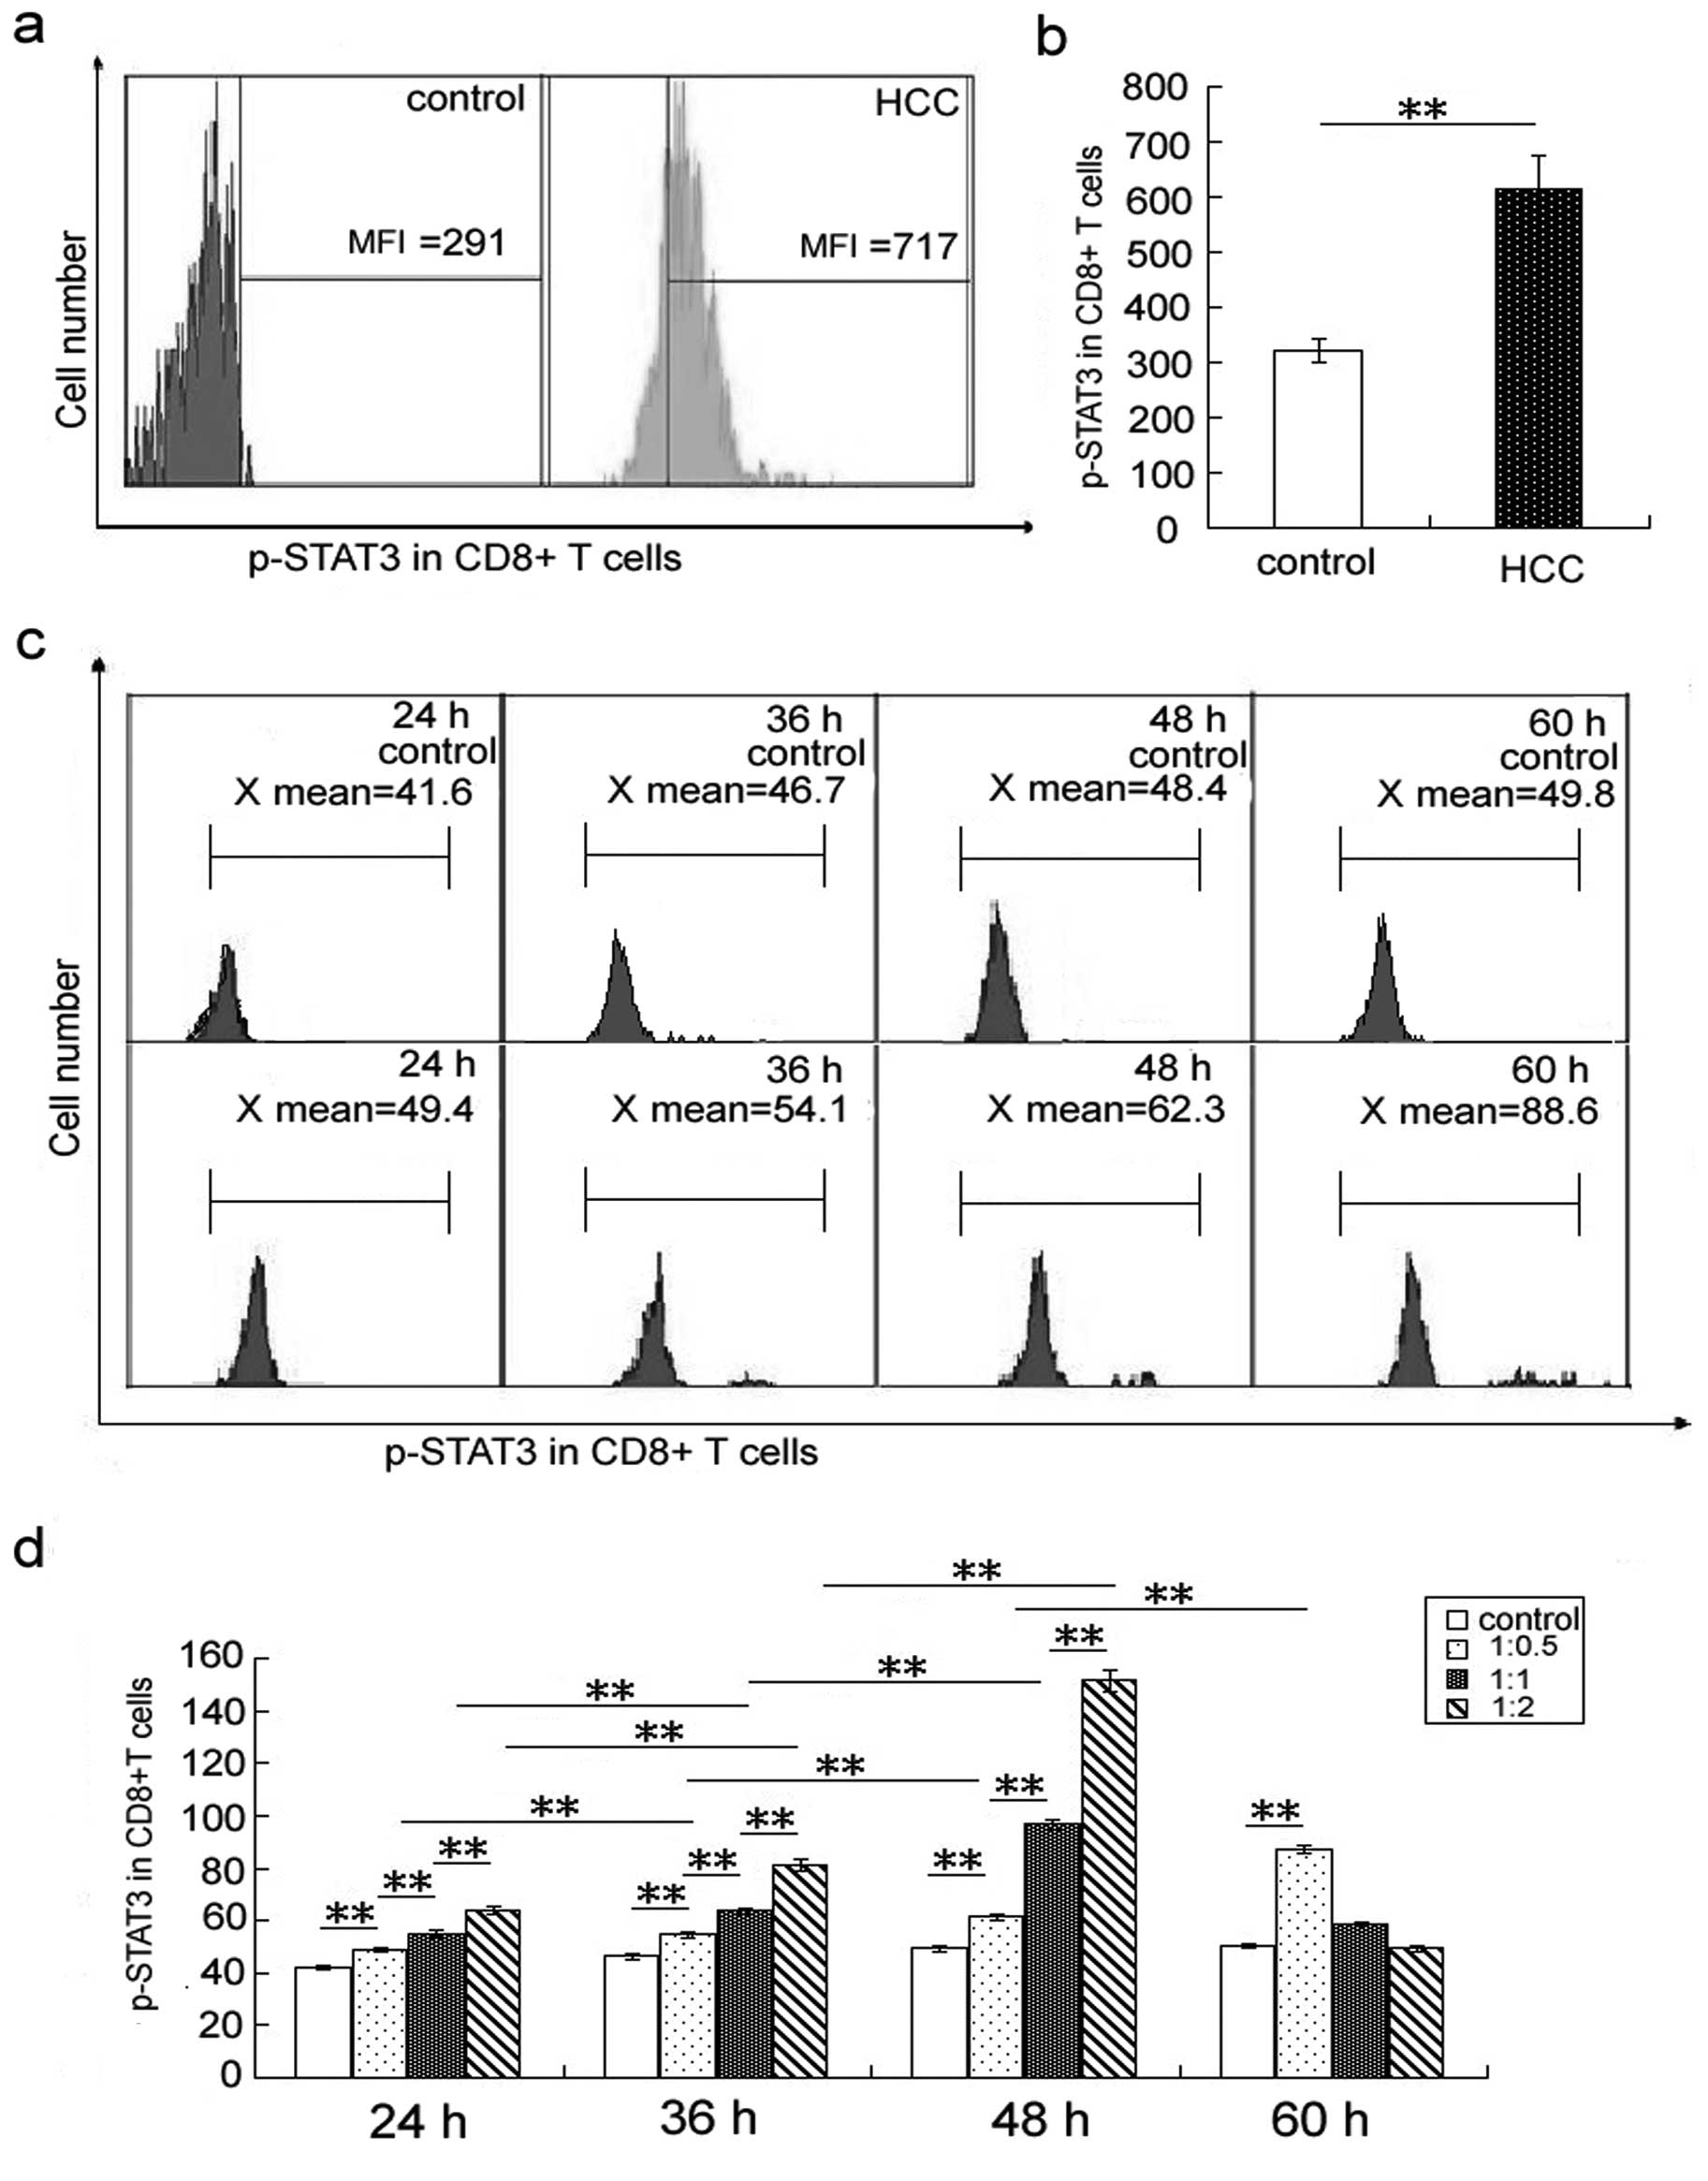 jbchan.in soft The level of phosphorylated signal transducer and activator of  transcription 3 (p-STAT3) is increased in peripheral CD8+ T cells in  hepatocellular carcinoma ...